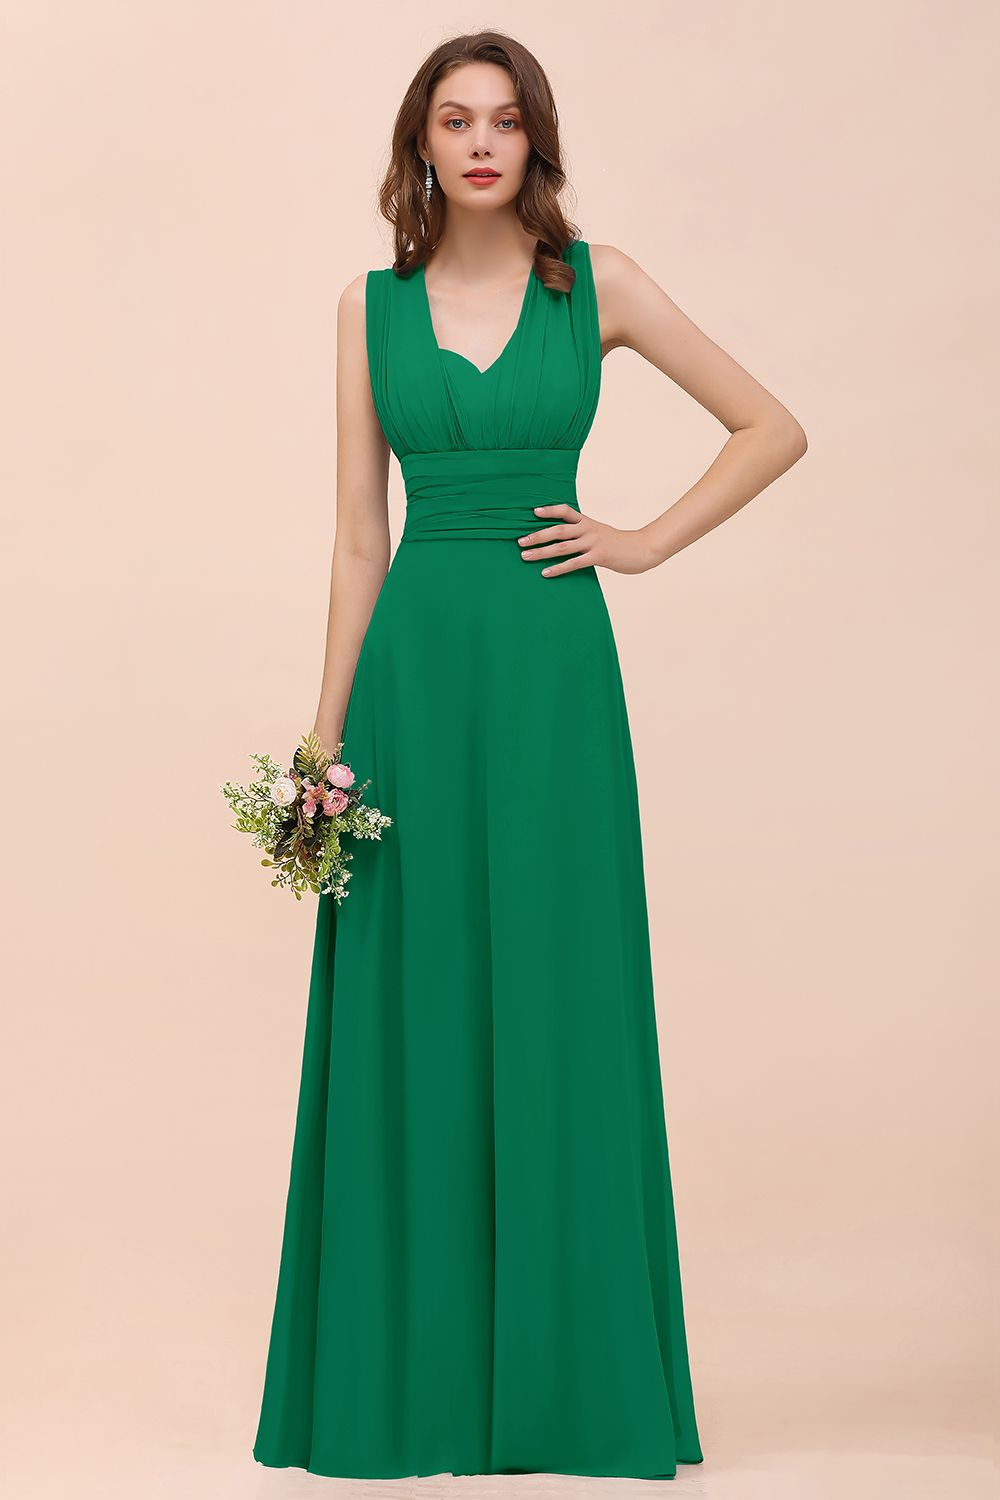 BMbridal New Arrival Affordable Dusty Blue Ruched Long Convertible Bridesmaid Dresses